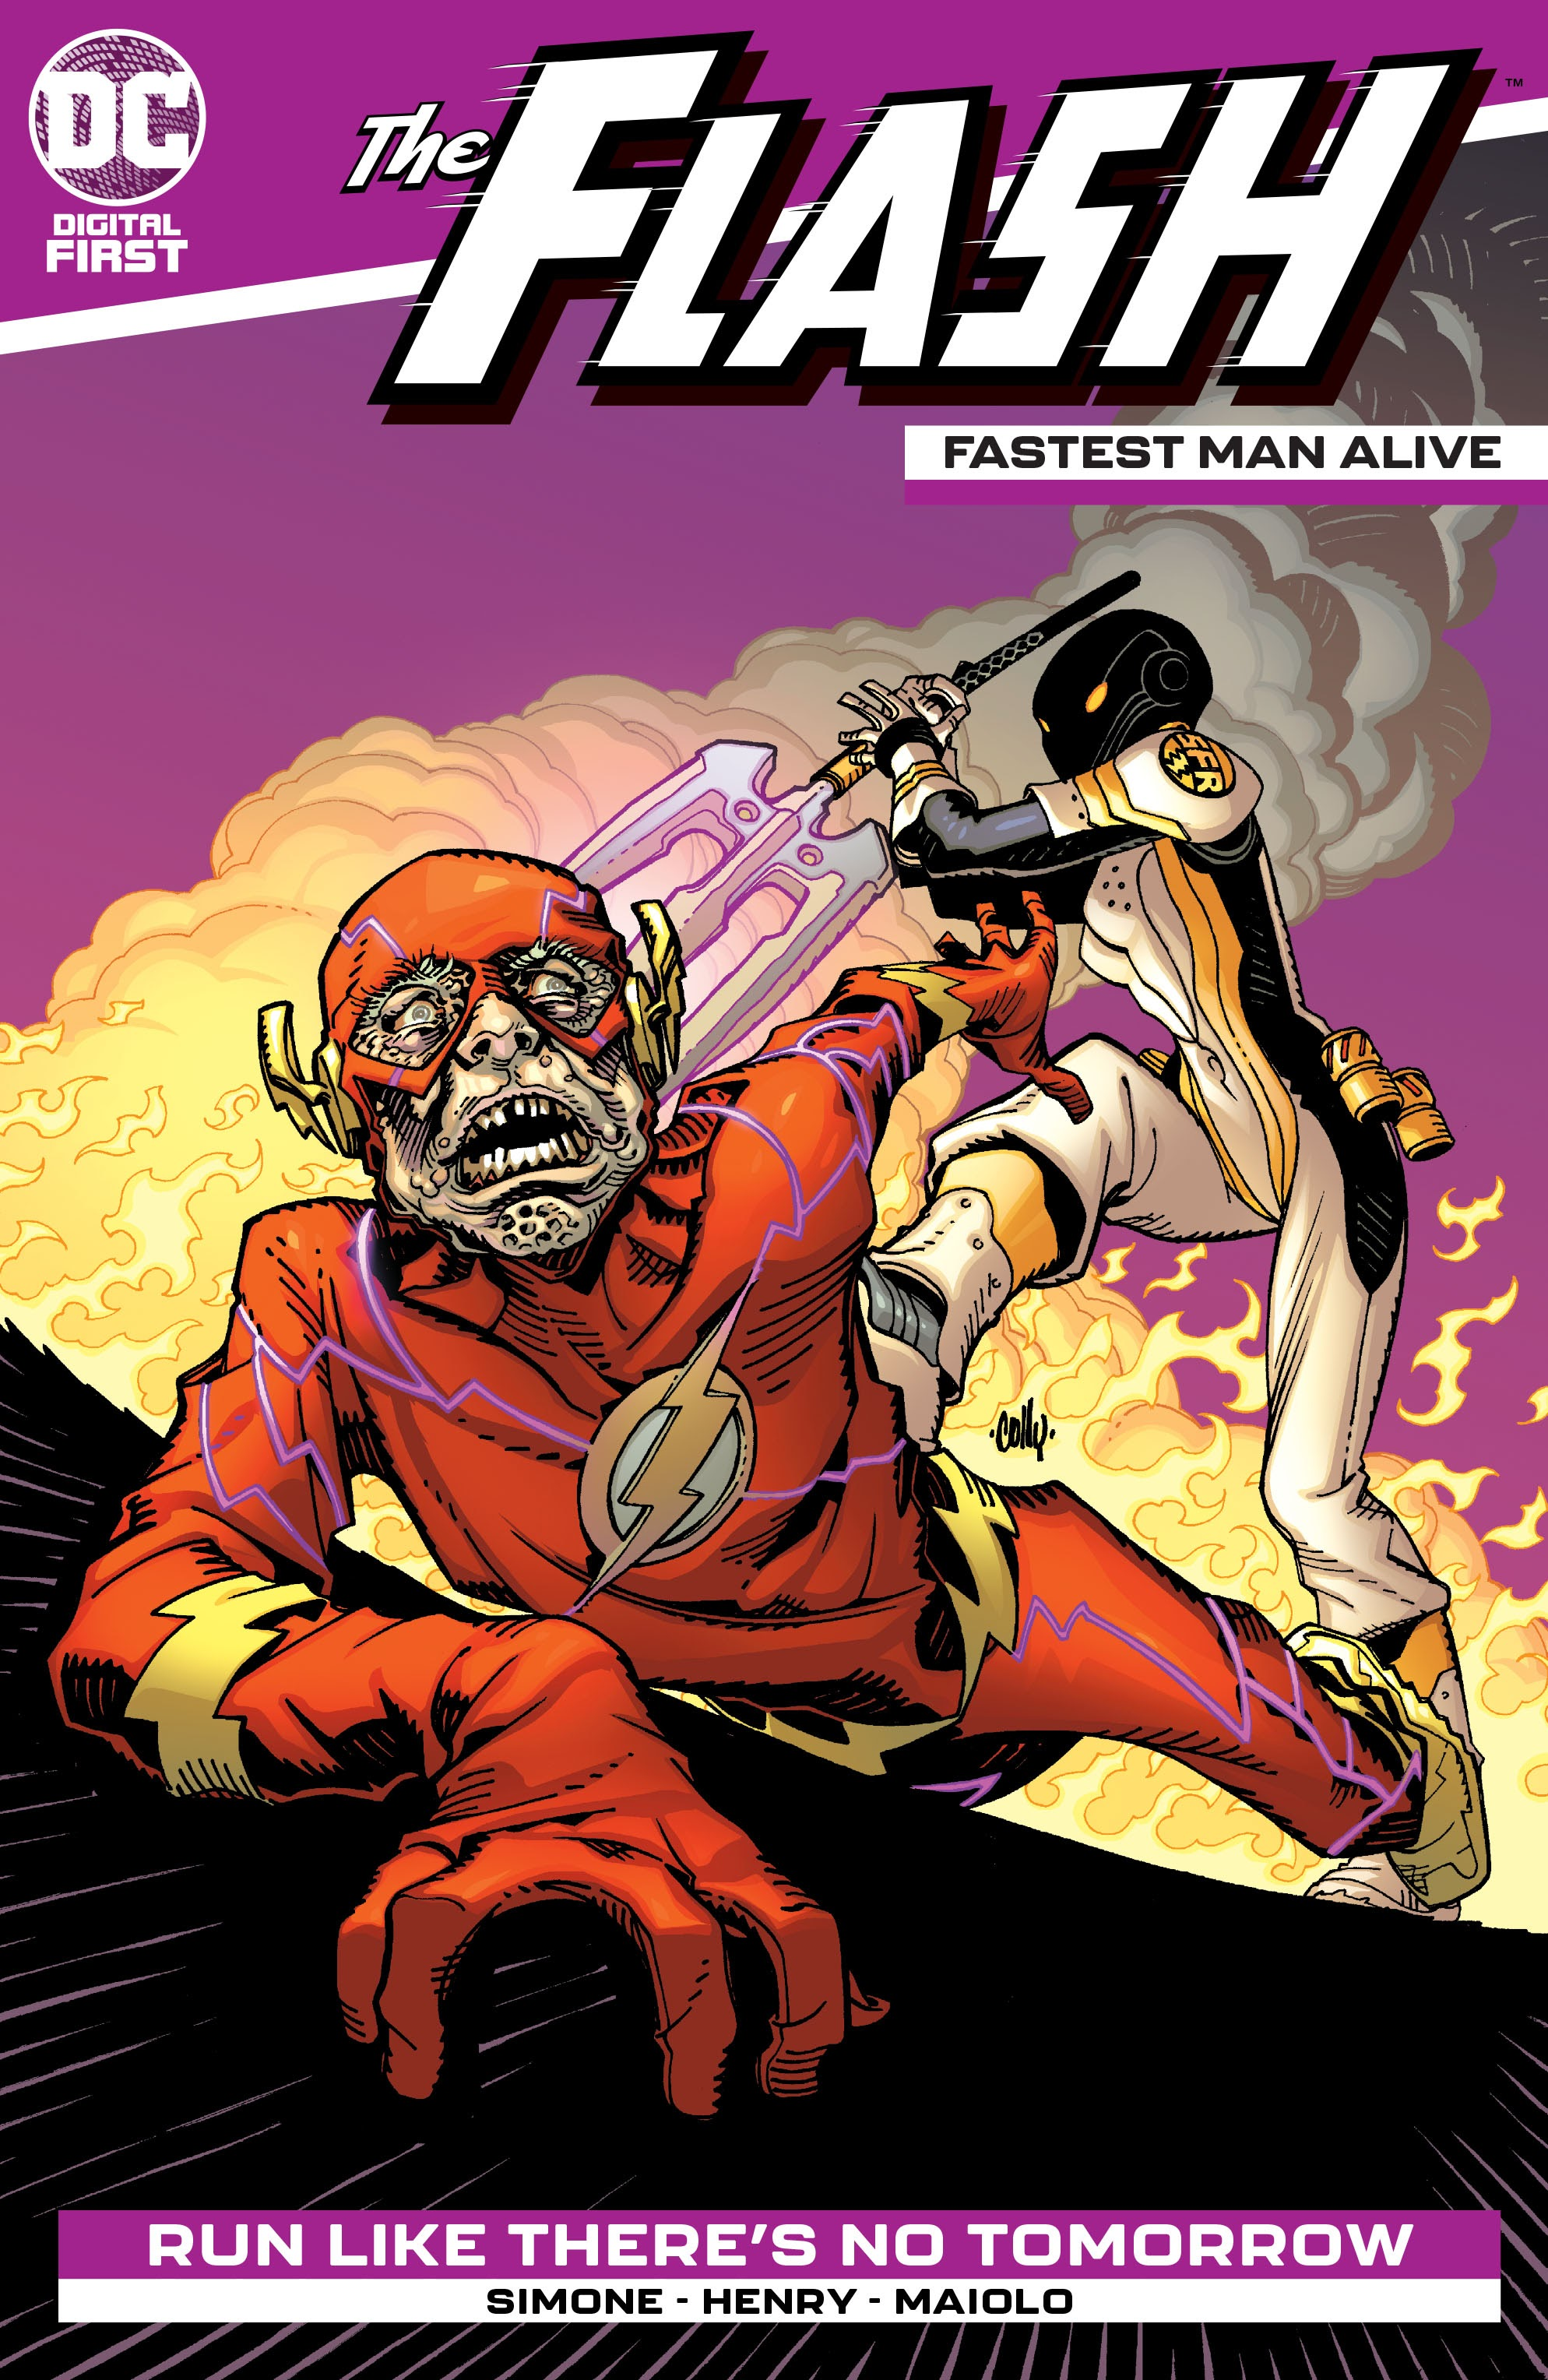 The Flash: Fastest Man Alive Vol 1 2 (Digital)